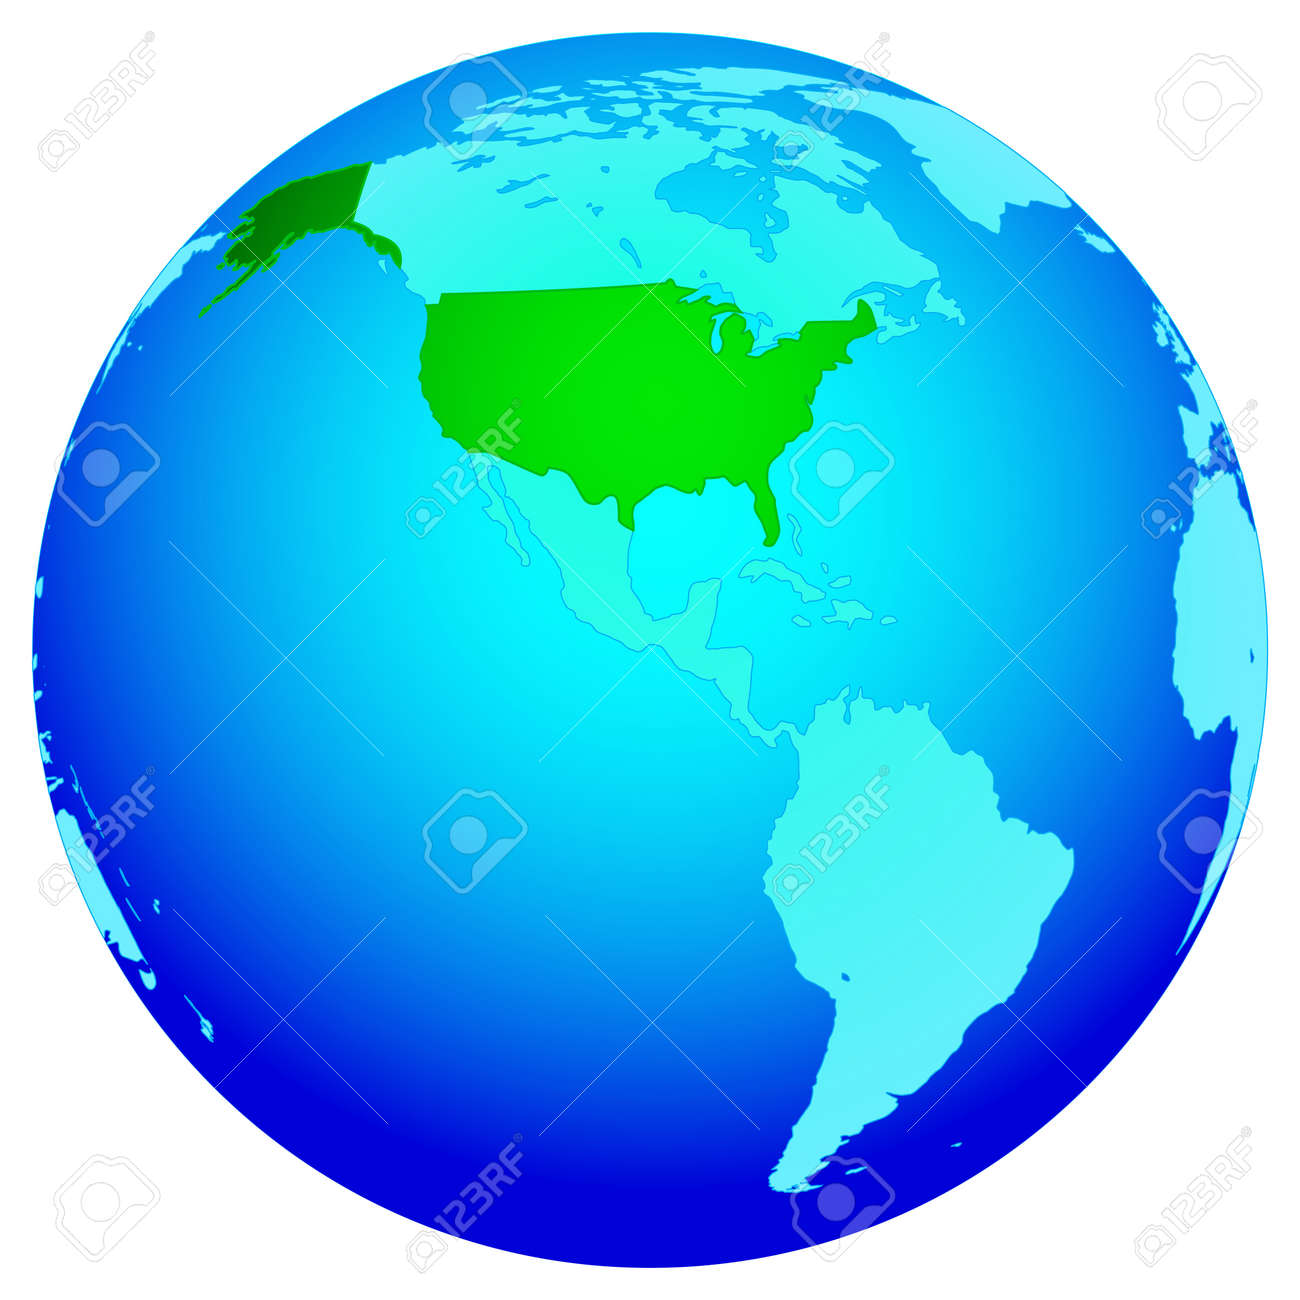 Silhouette Map Of The USA On The Globe All Objects Are - Globe of usa